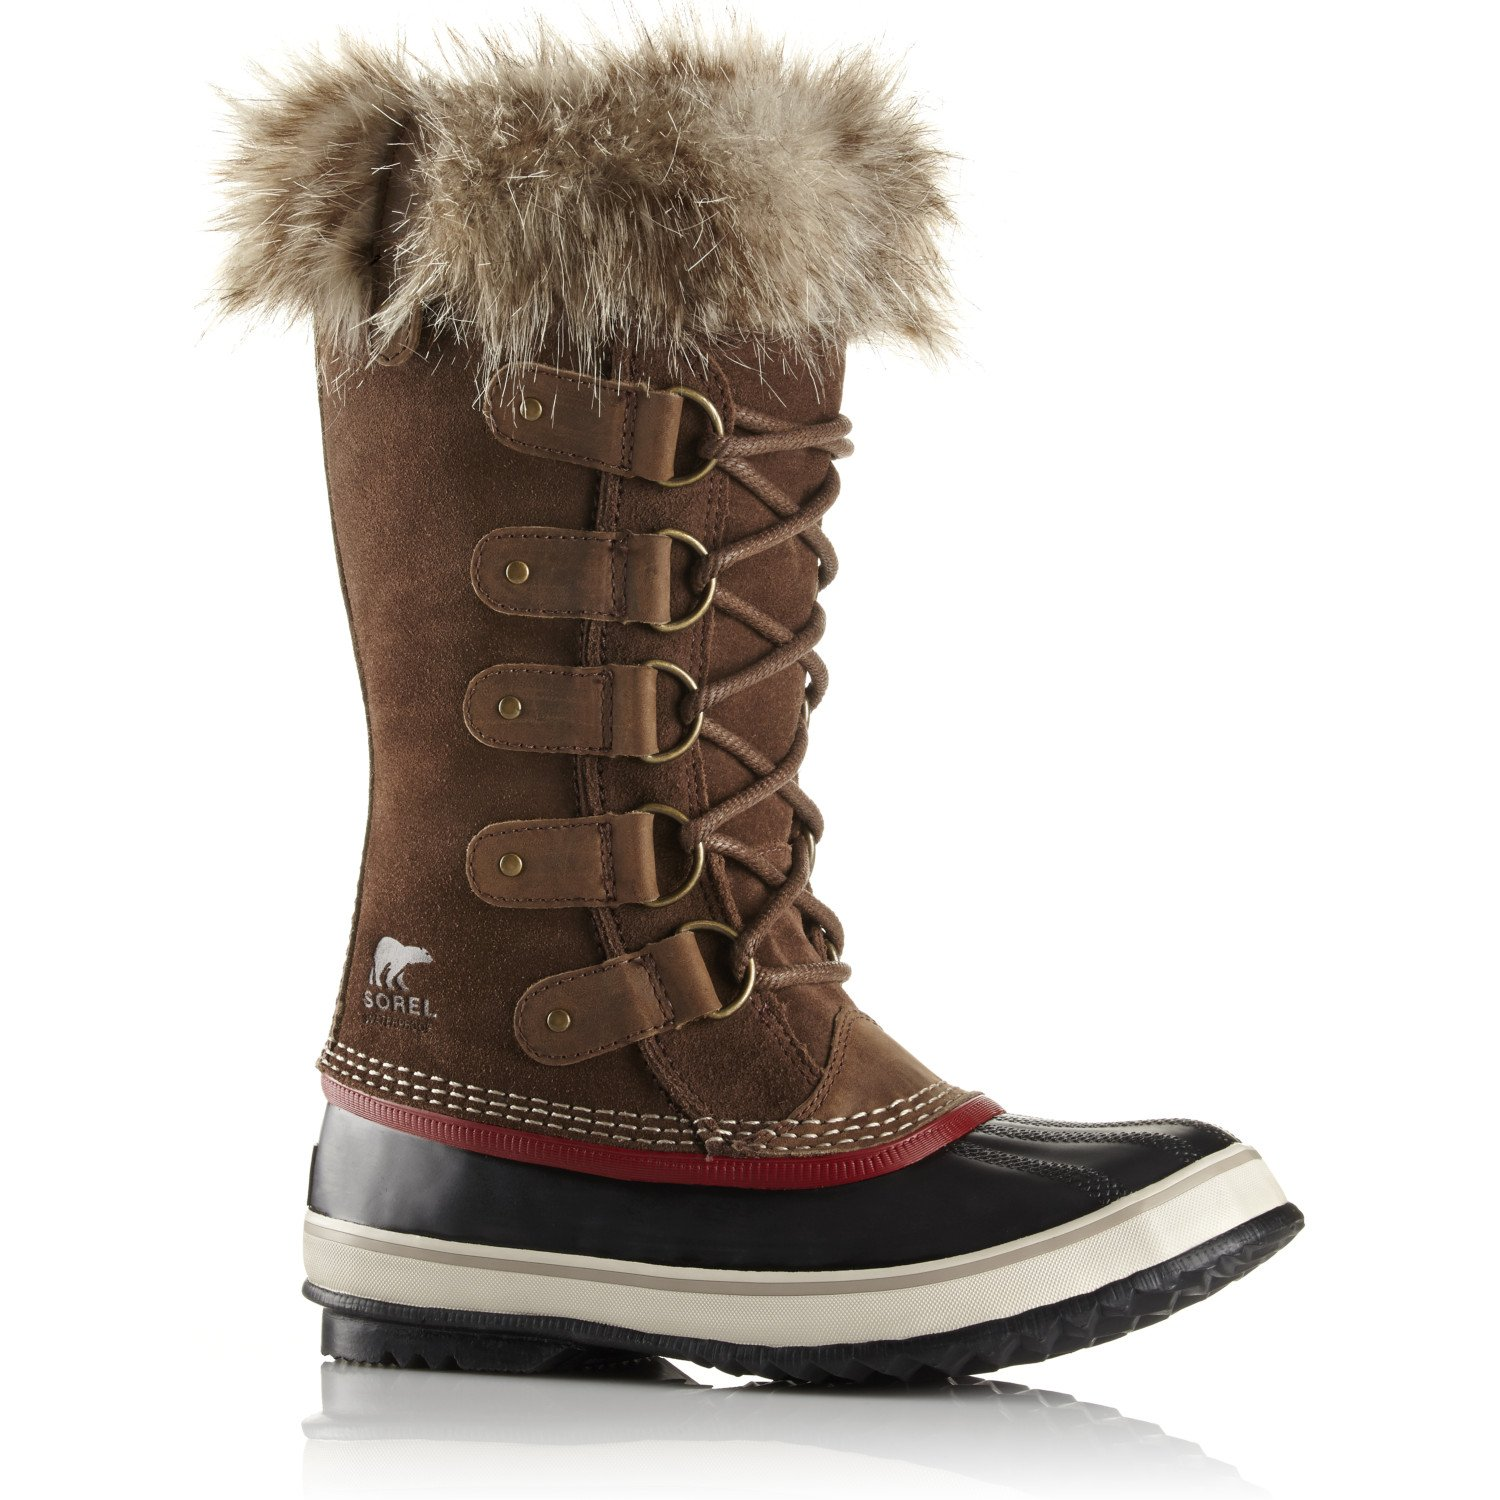 Sorel Joan Of Arctic Boot Womens Style: NL2429-261 Size: 7